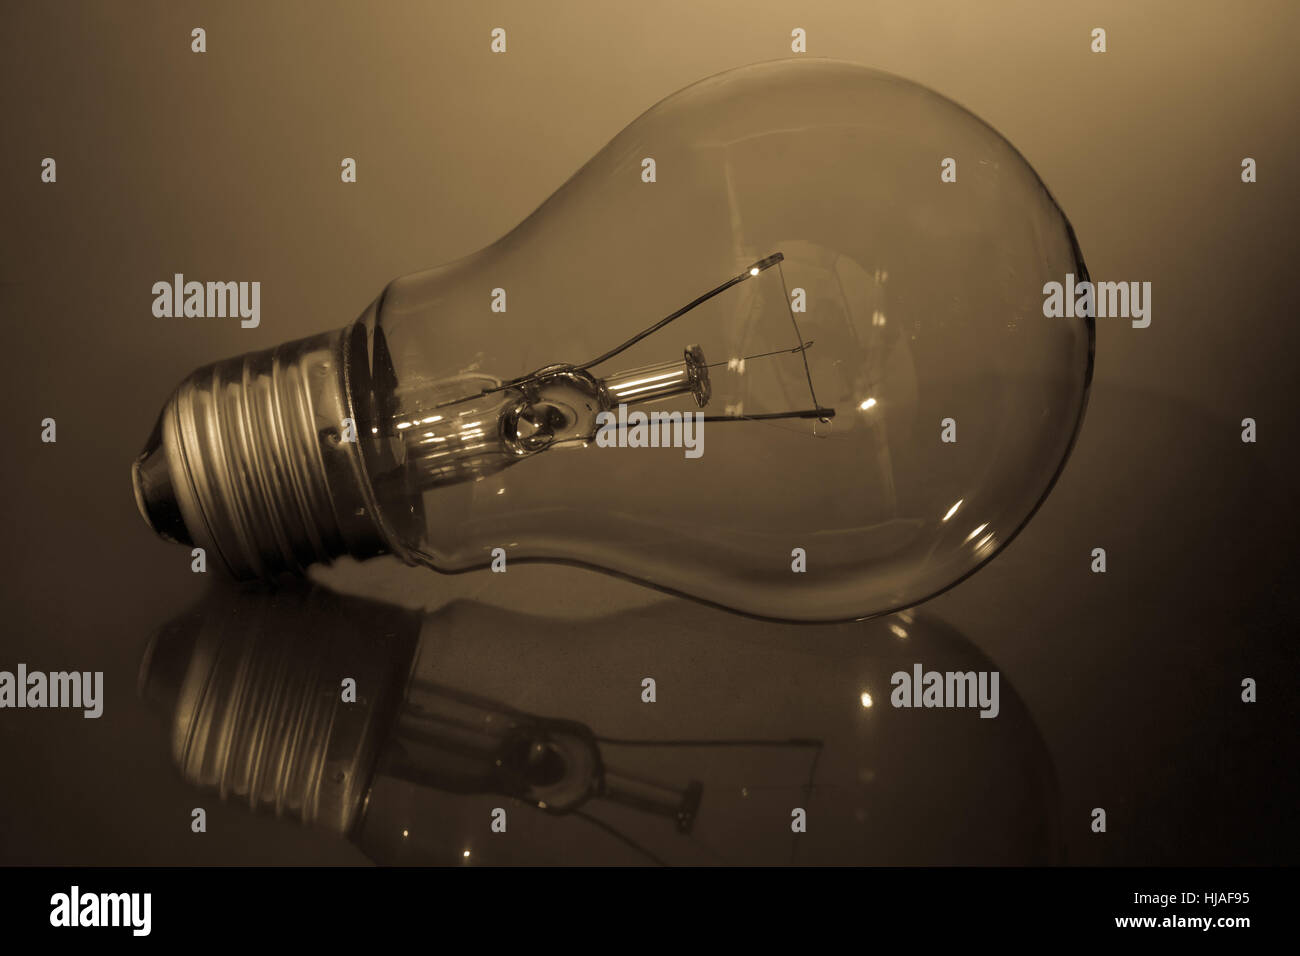 Clear light bulb laying on its side on reflective surface in sepia tones - Stock Image